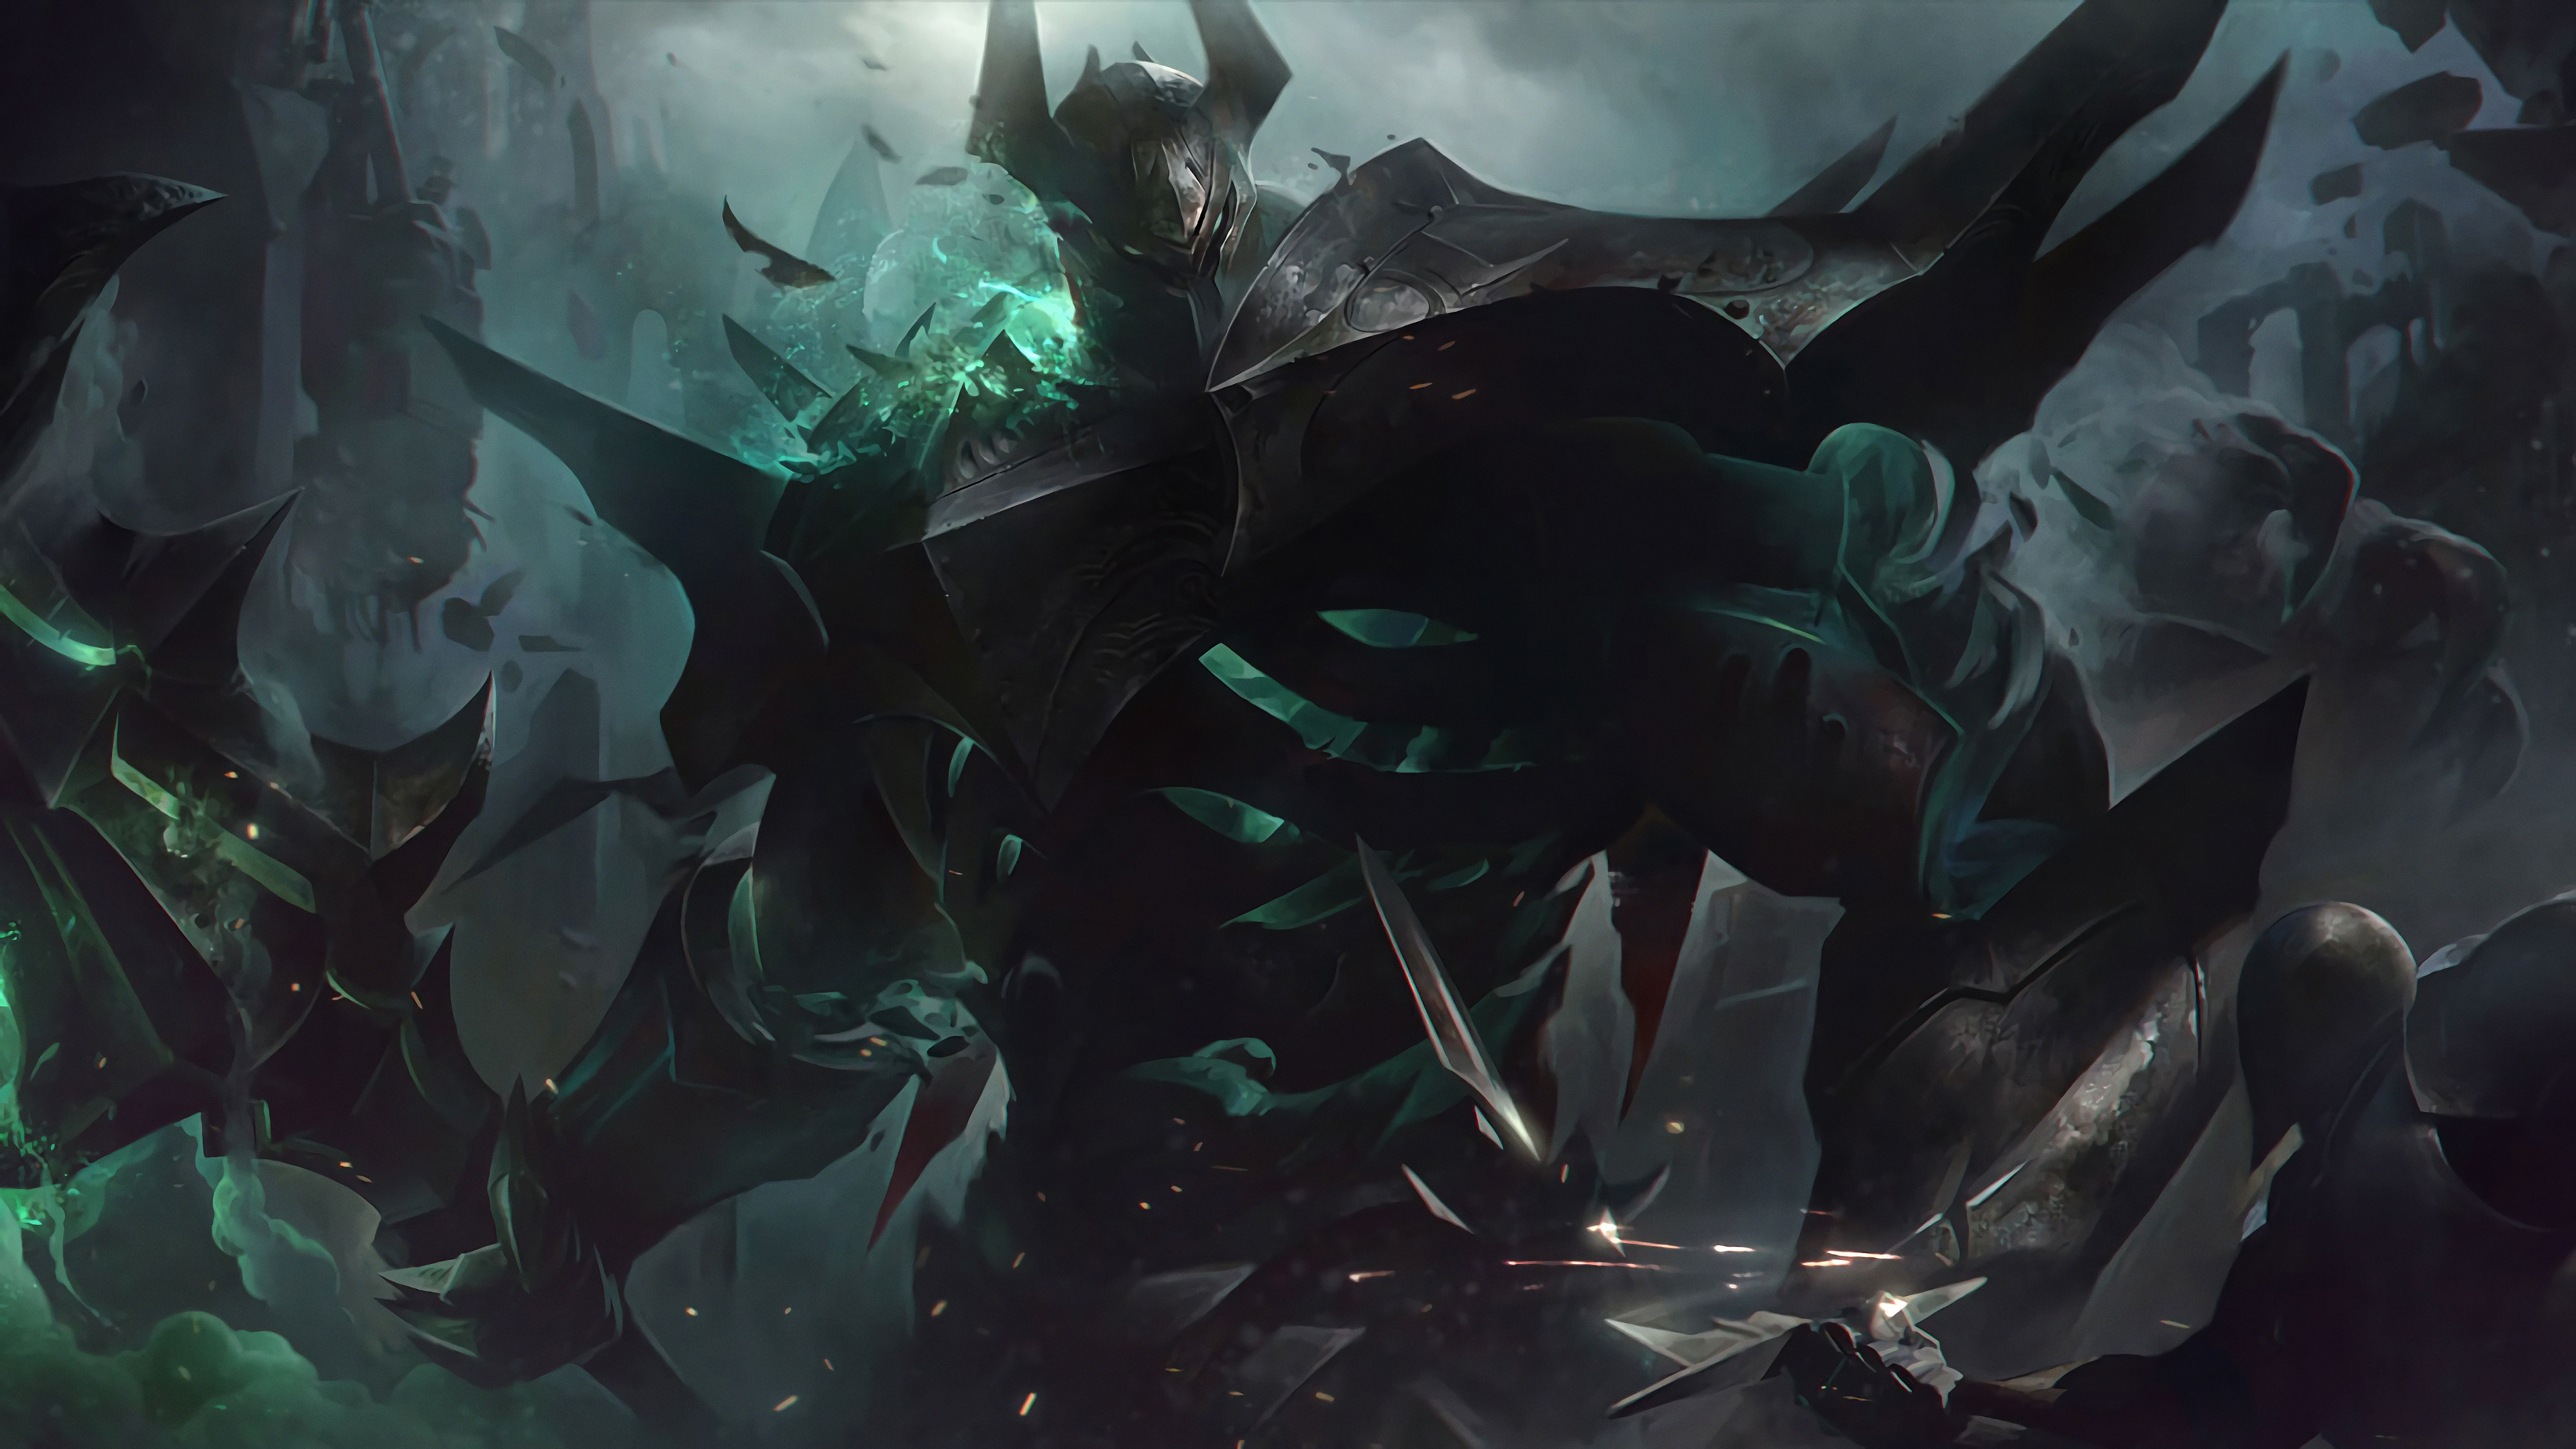 Mordekaiser New Splash Art Lol 4k Wallpaper 96